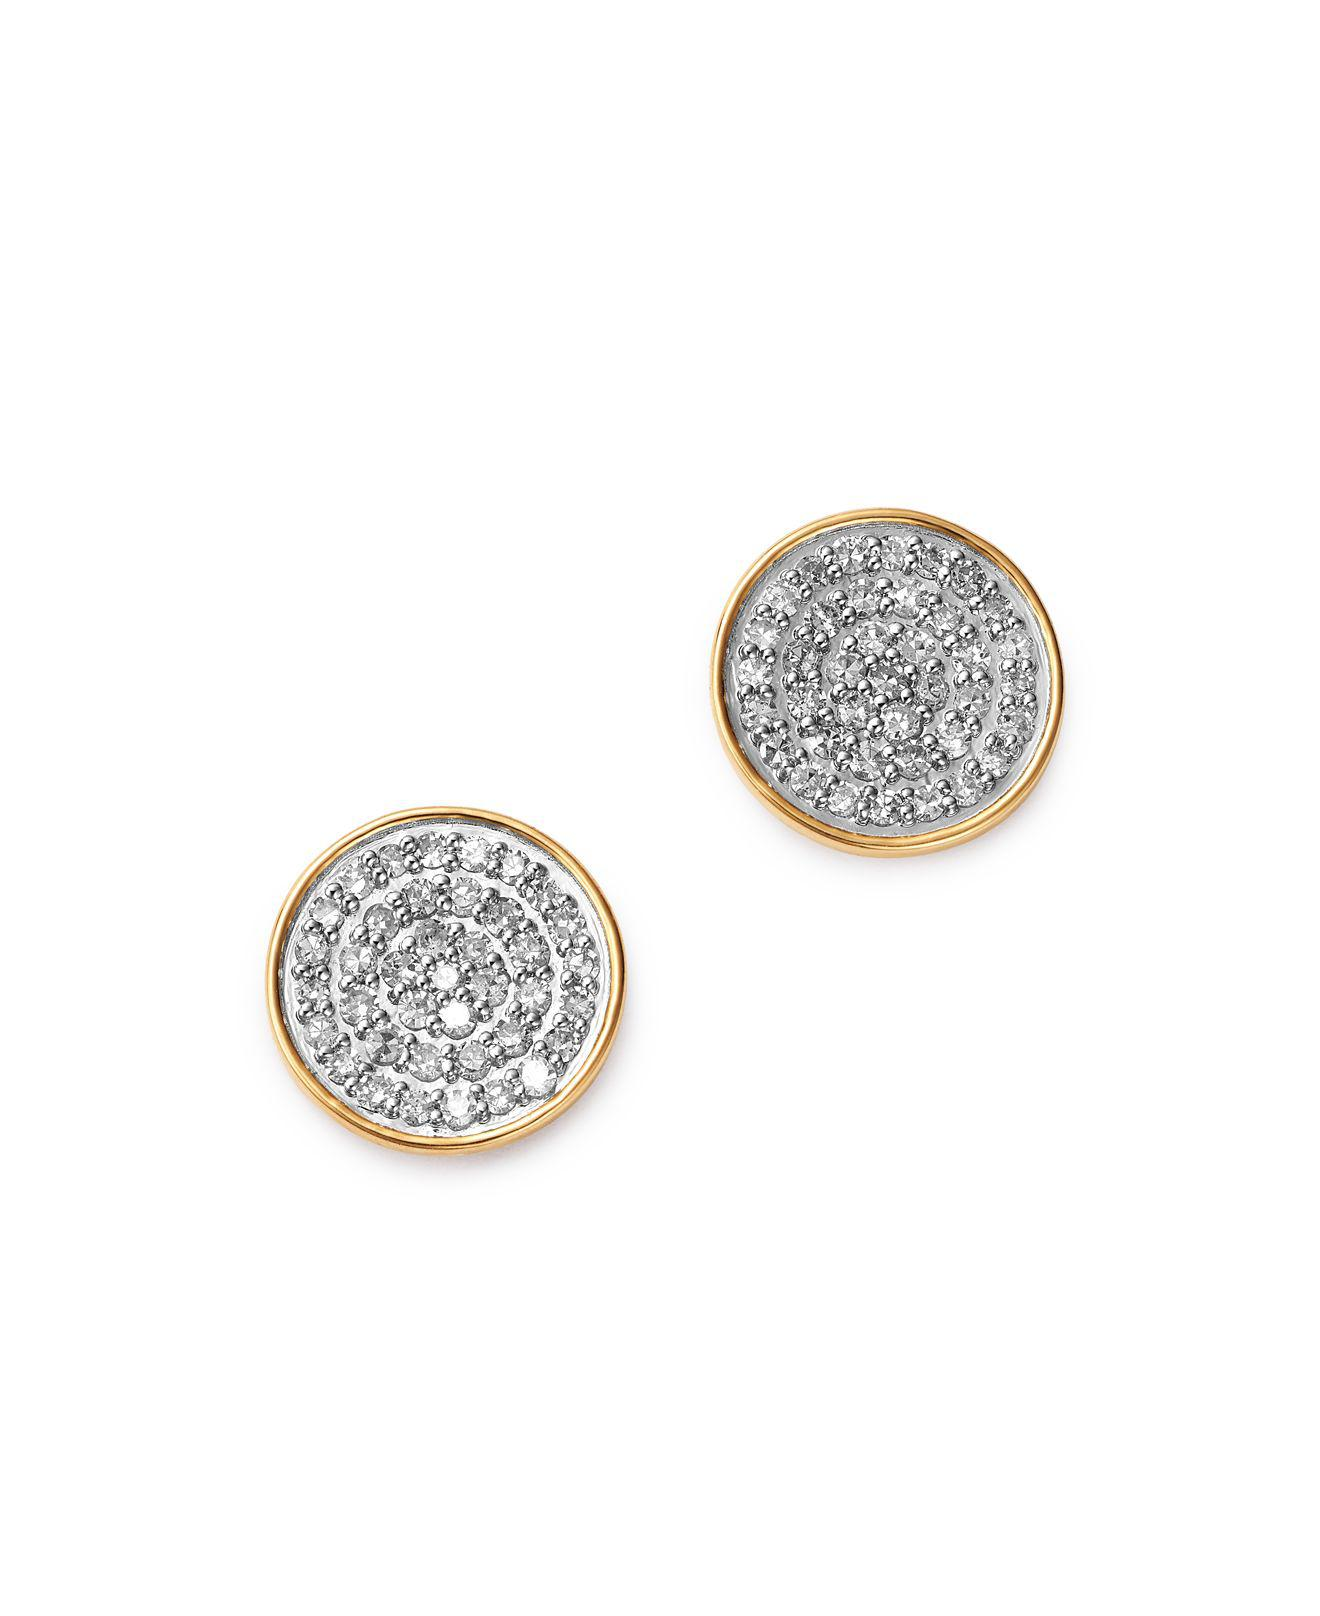 ball reppin jones yellow vermeil product earrings silver gold large stud